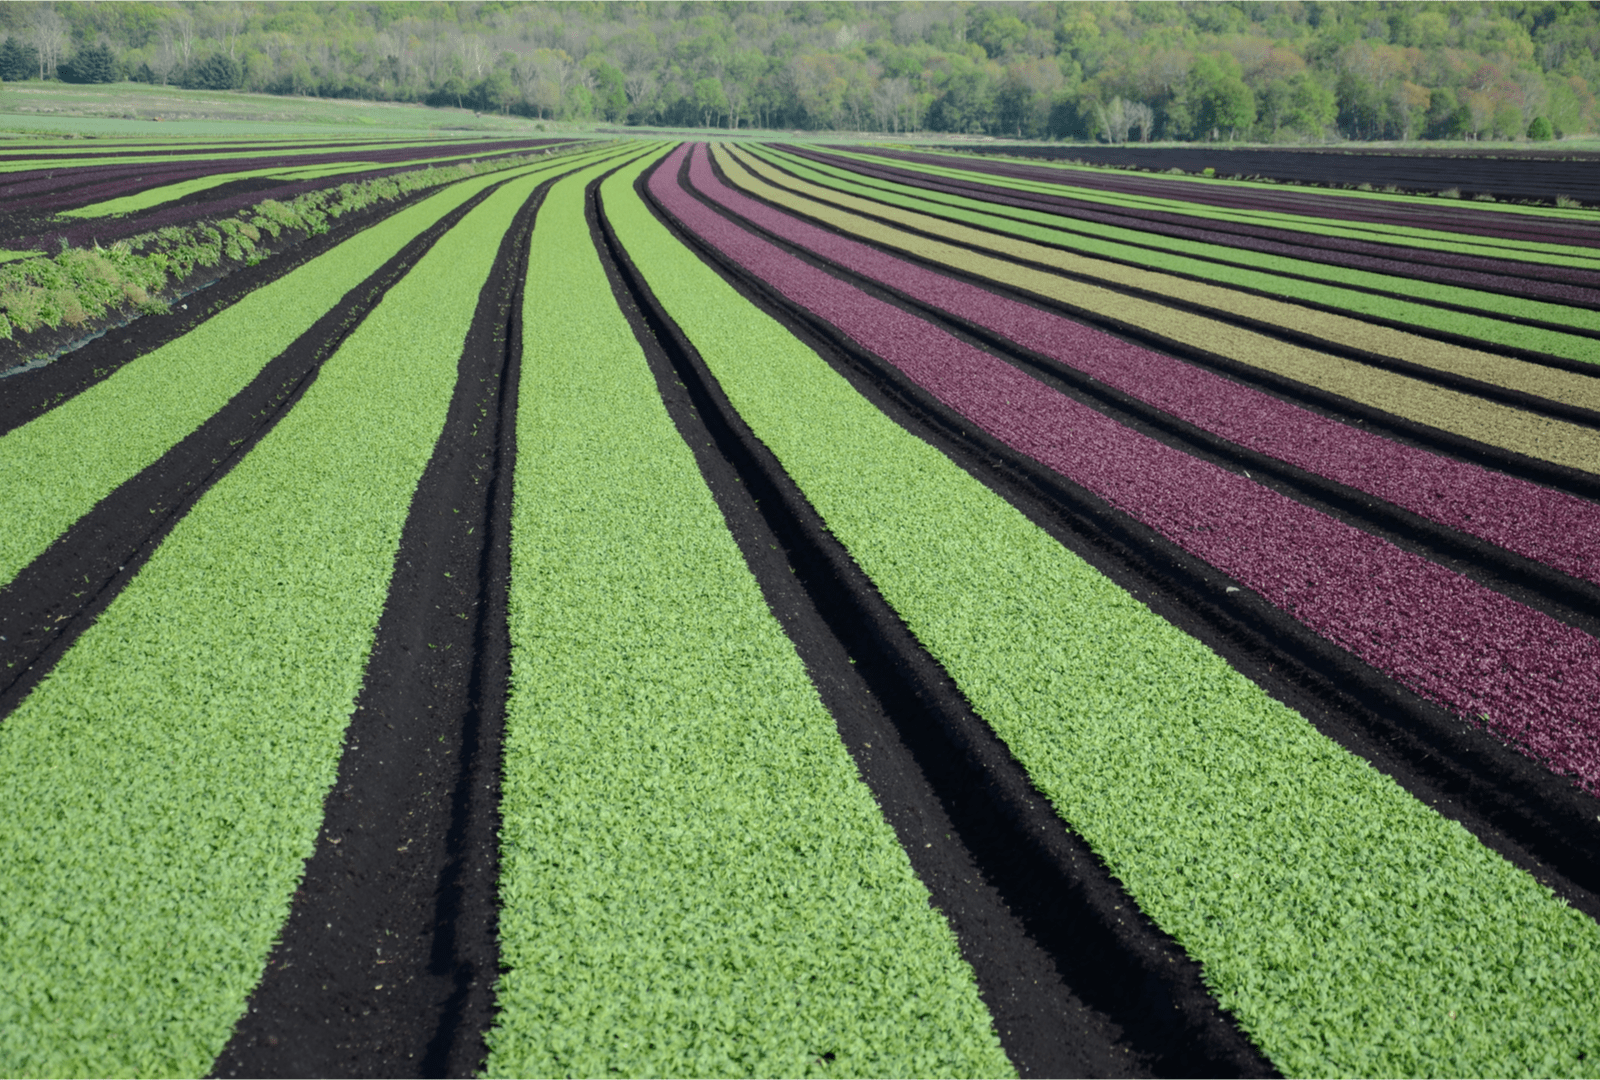 Agriculture venture capital had a $26 billion year